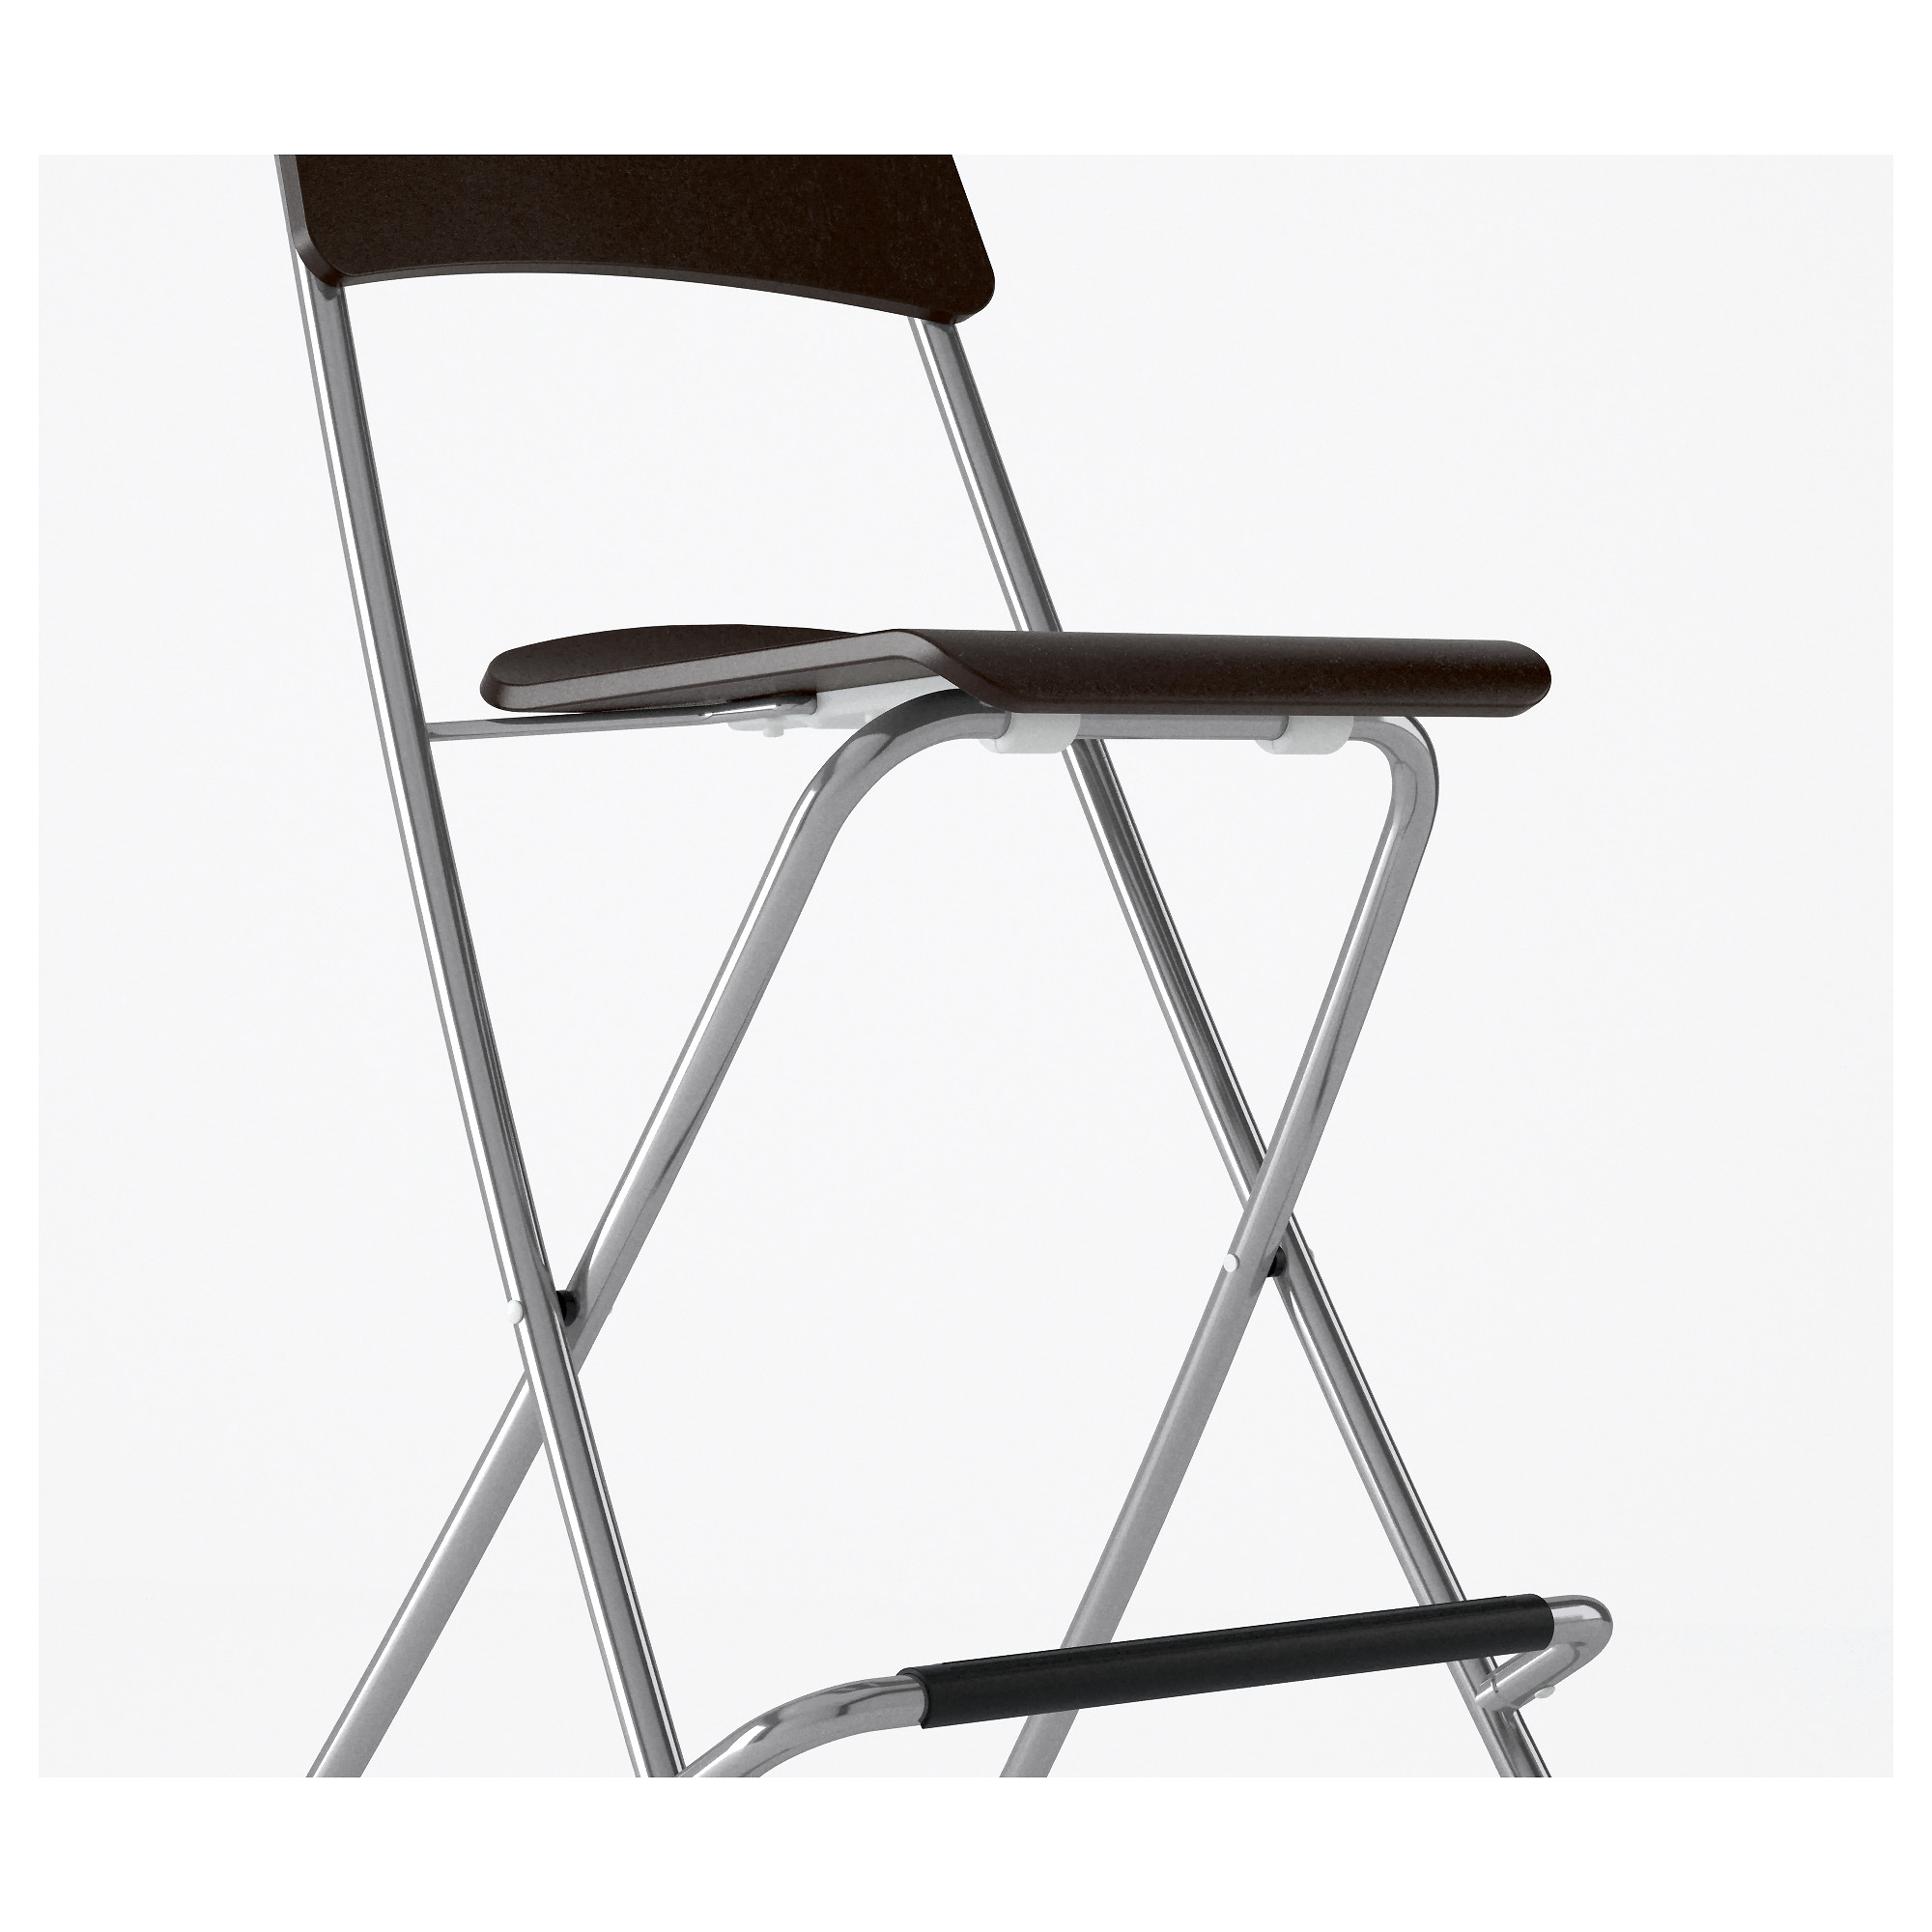 "FRANKLIN Bar stool with backrest foldable 24 3 4 "" IKEA"